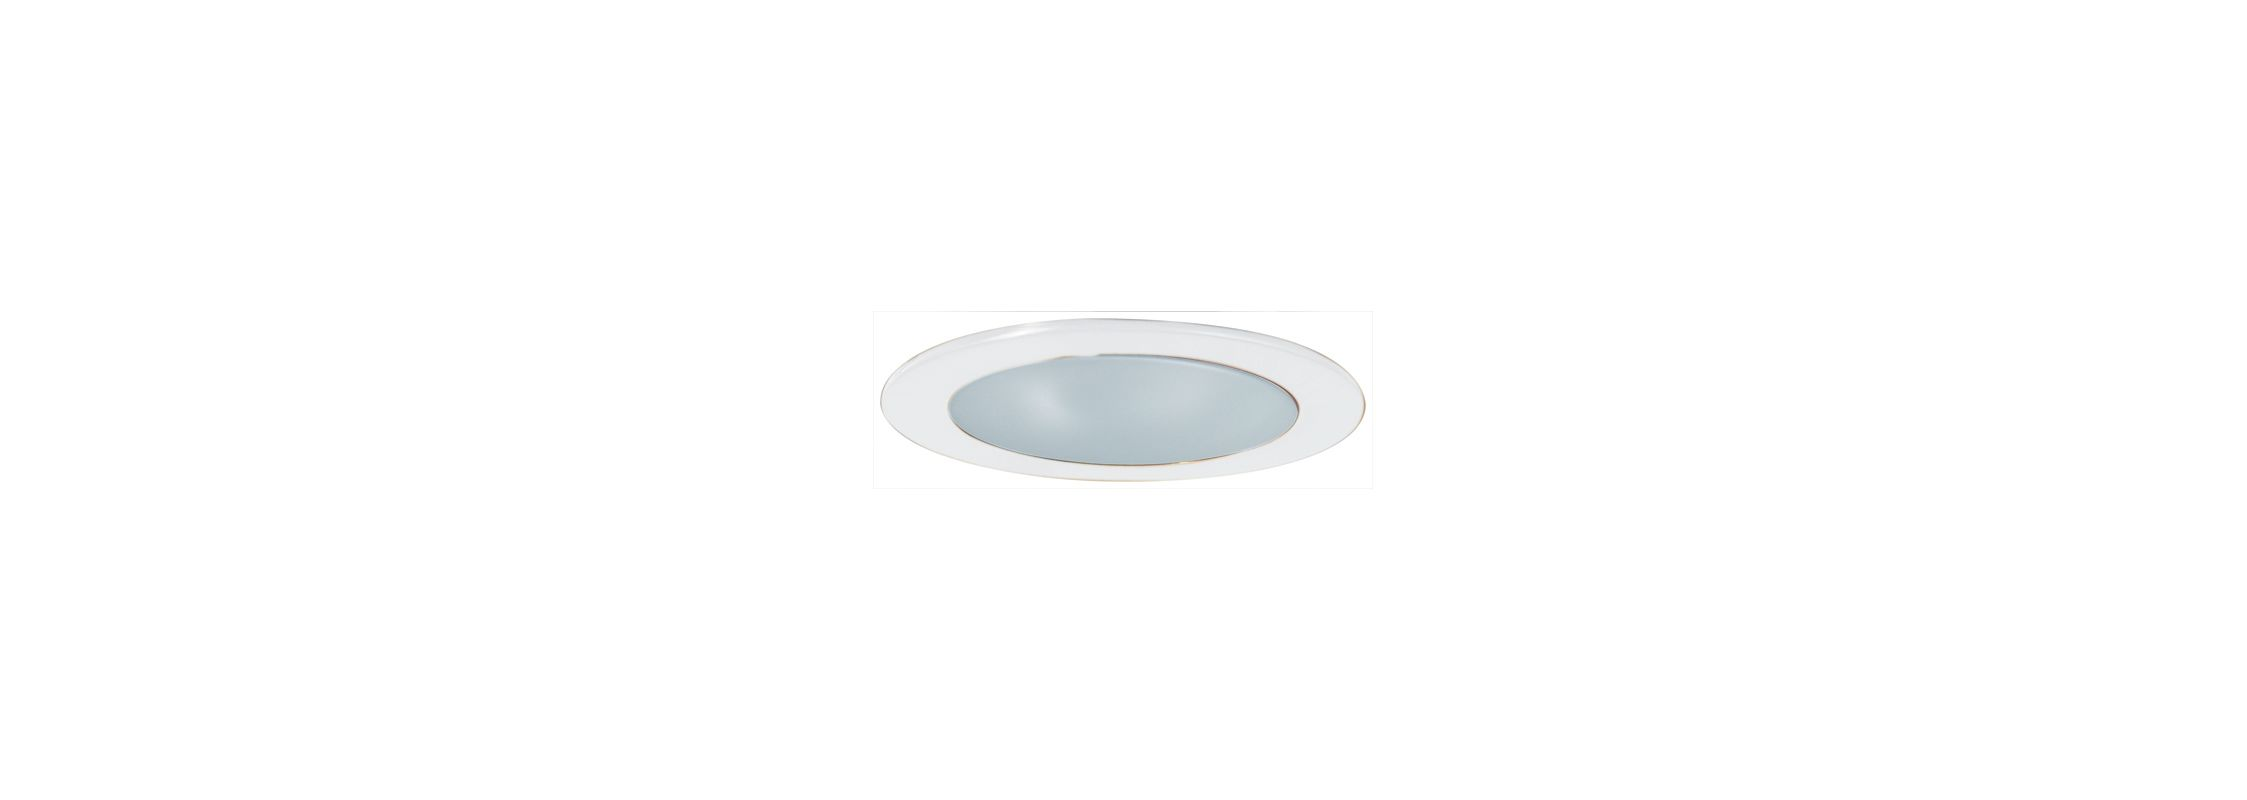 "Elco EL9112SH 4"" White Lexan Shower Trim with Frosted Lens and"